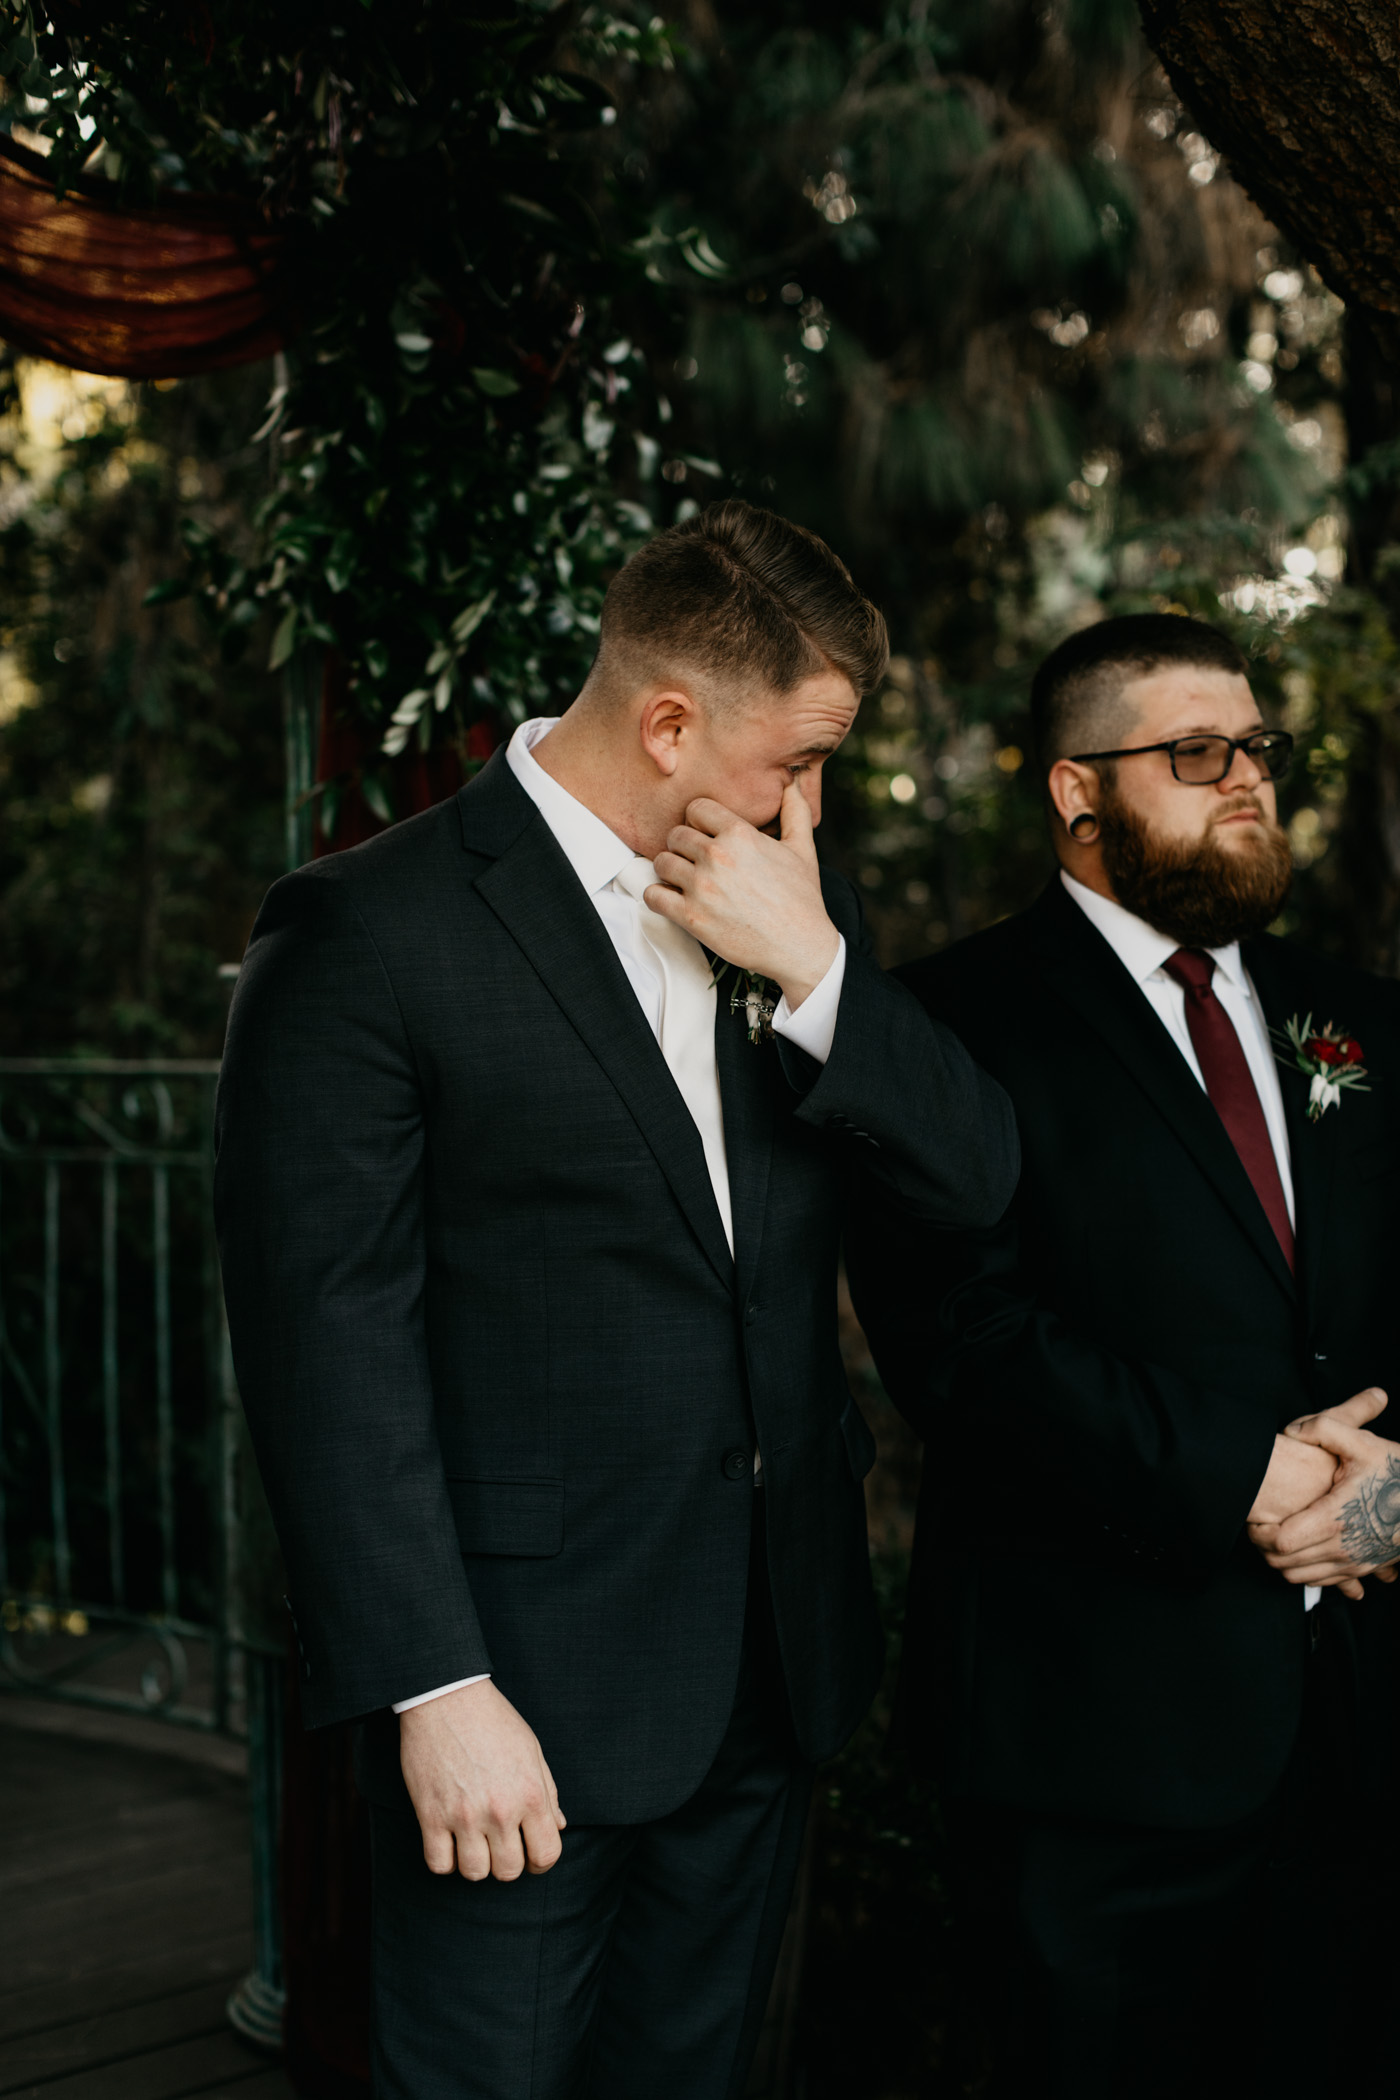 Groom crying as his bride walks down the aisle